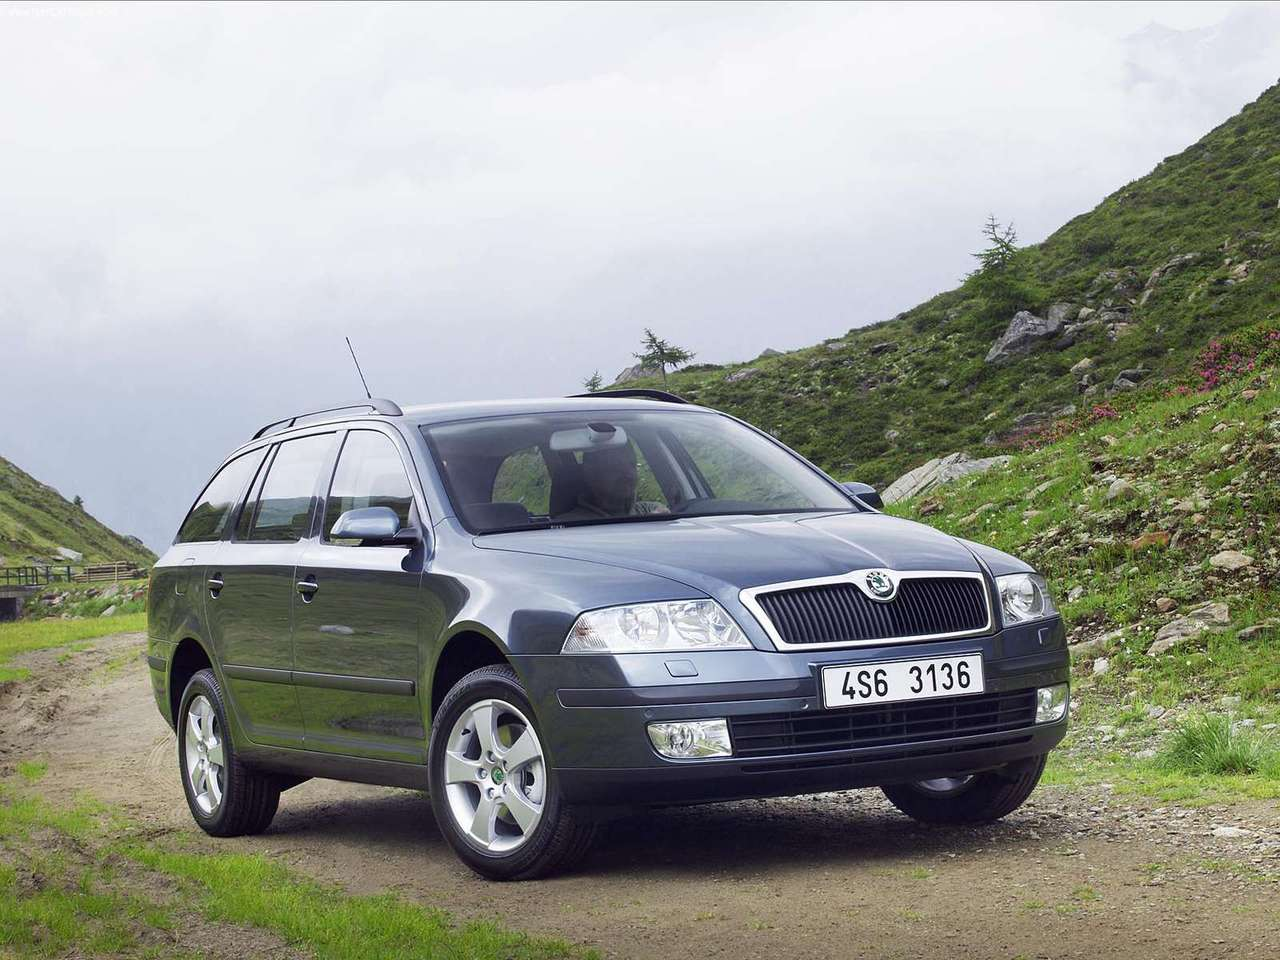 2005 skoda octavia combi 4x4 skoda cars. Black Bedroom Furniture Sets. Home Design Ideas